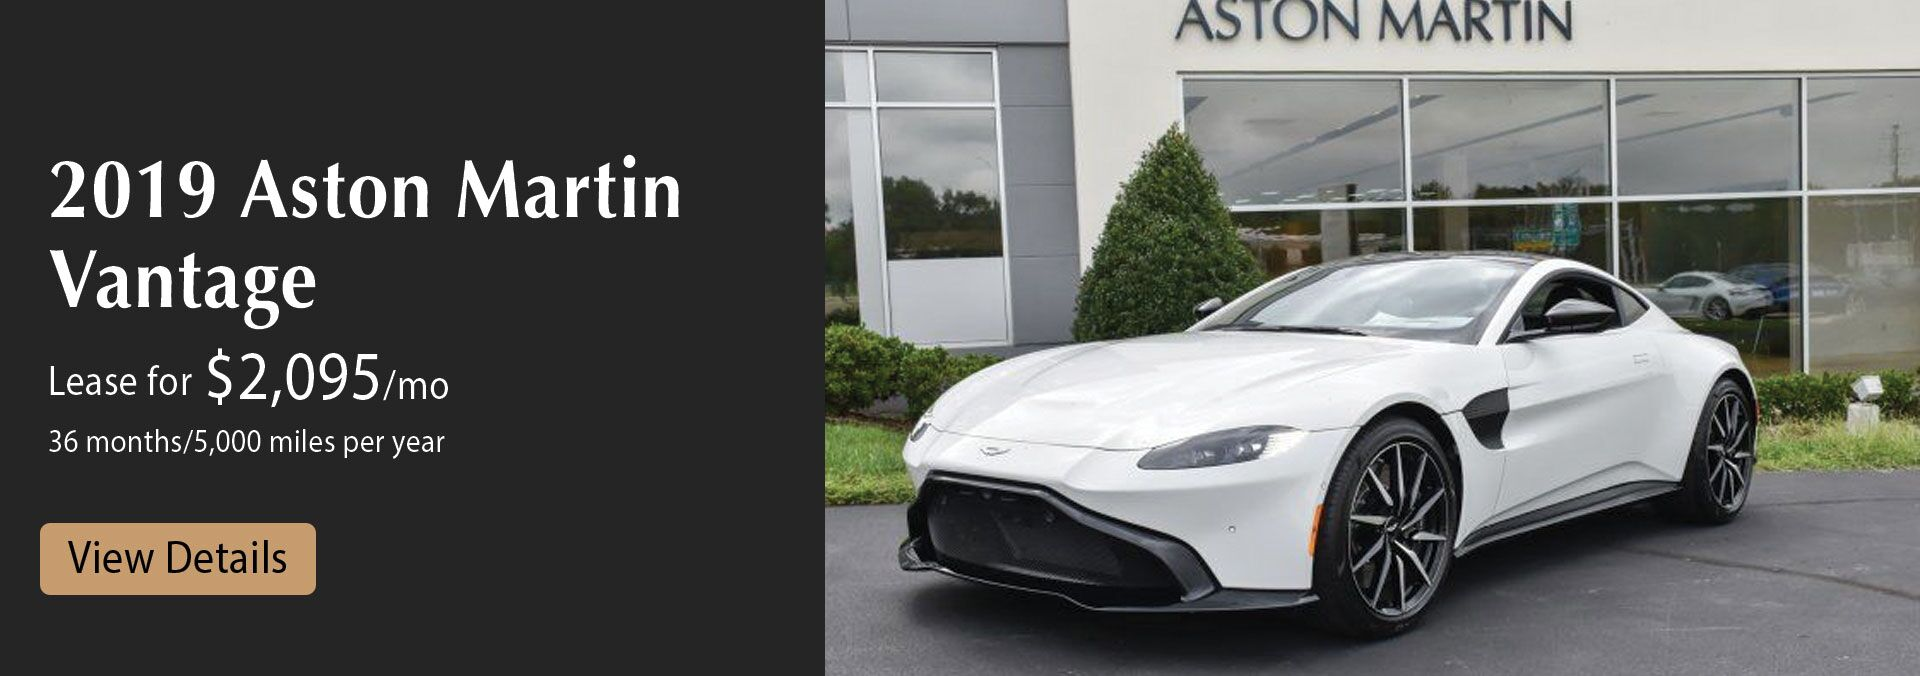 Aston Martin Ferrari Maserati Porsche Dealership Greensboro NC - Aston martin cars com